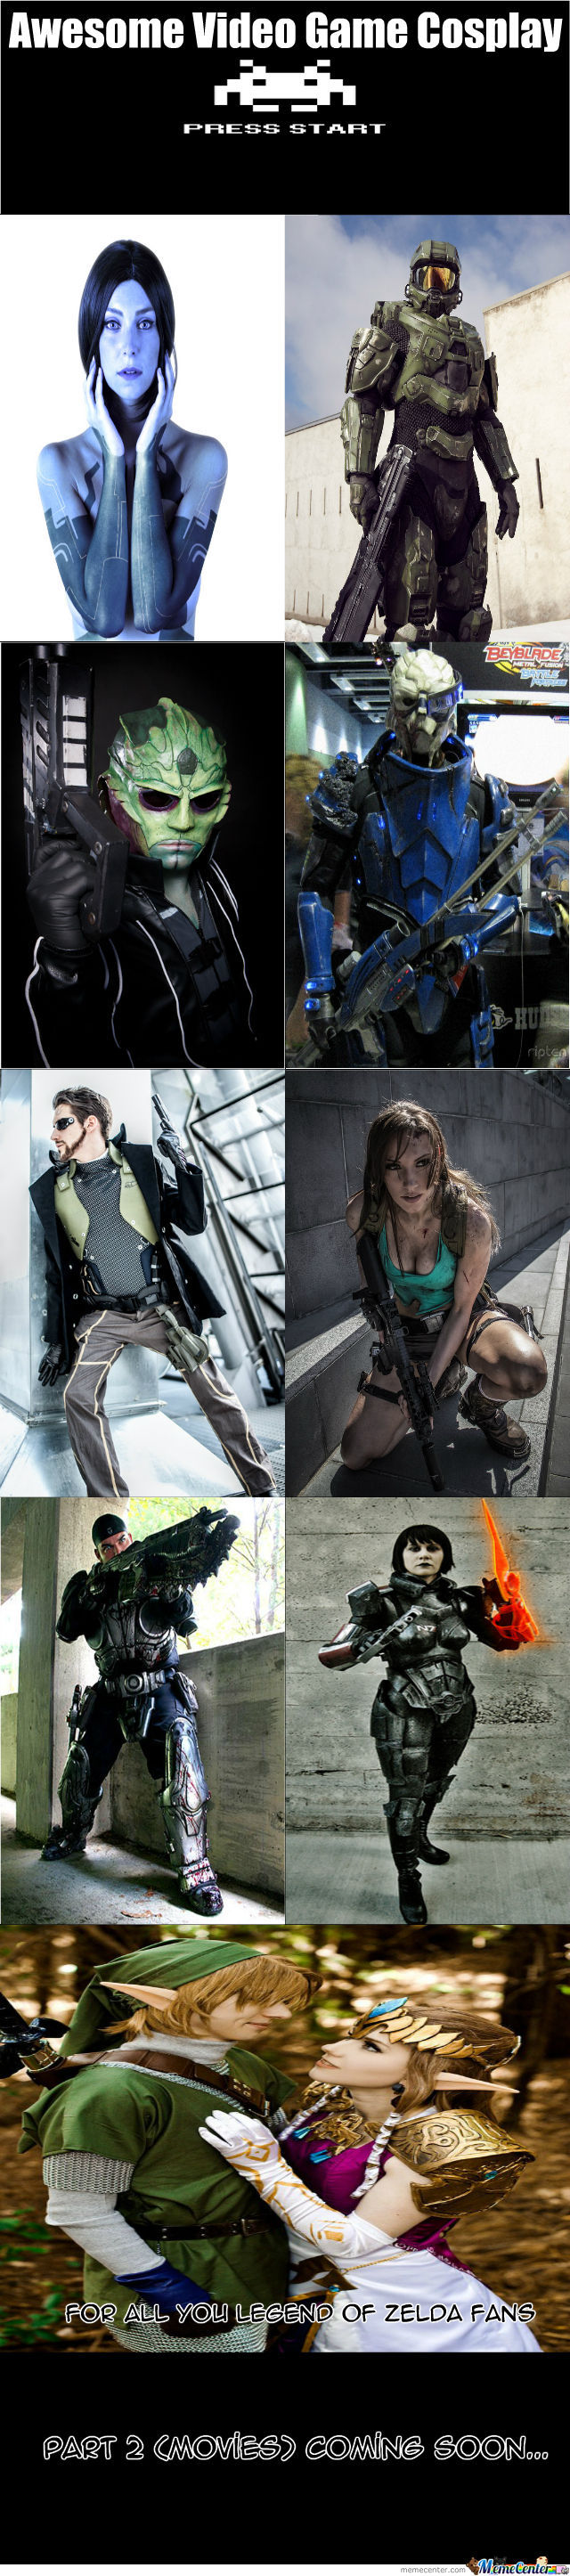 Cosplay...what Else?